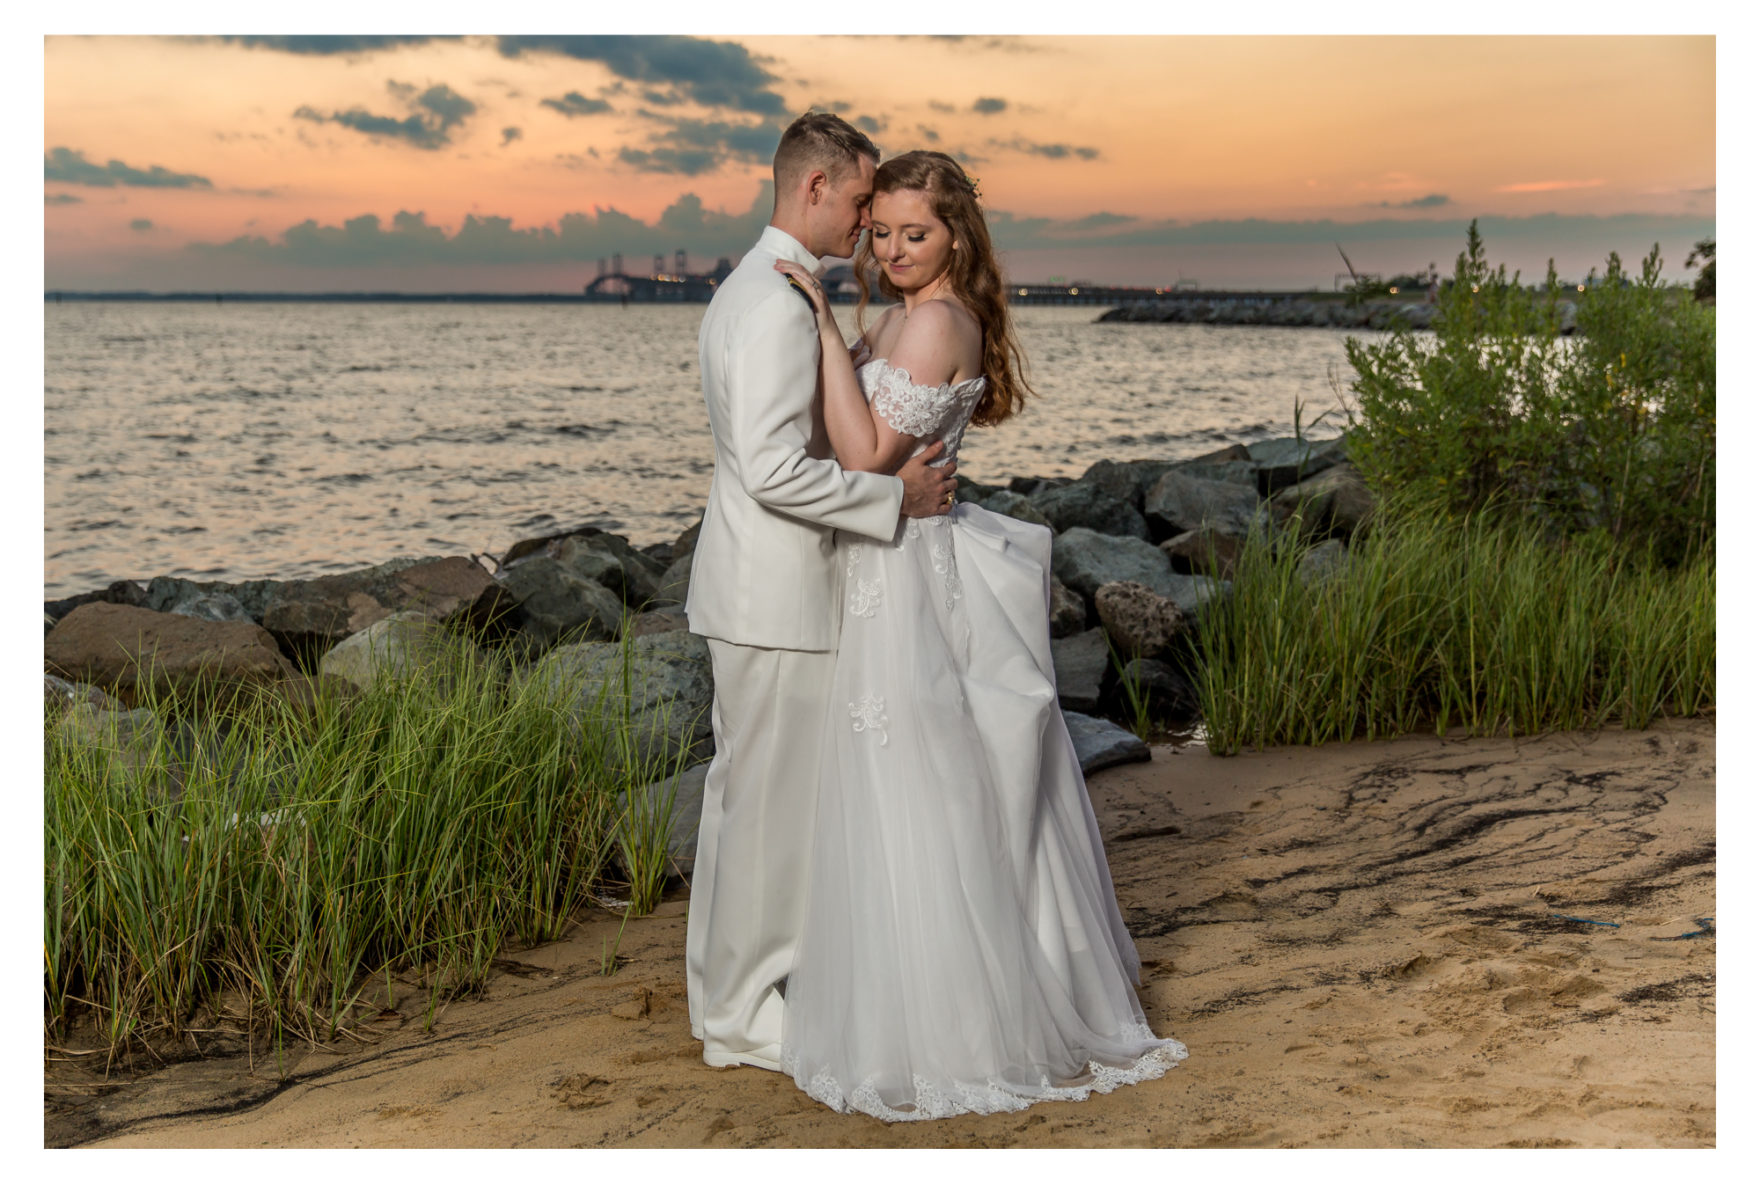 2020 Beach wedding, Waterfront wedding, Chesapeake Bay Wedding, Chesapeake Bay Beach Club, Covid Wedding, COVID-19, Postponed wedding, Summer Wedding, August Wedding